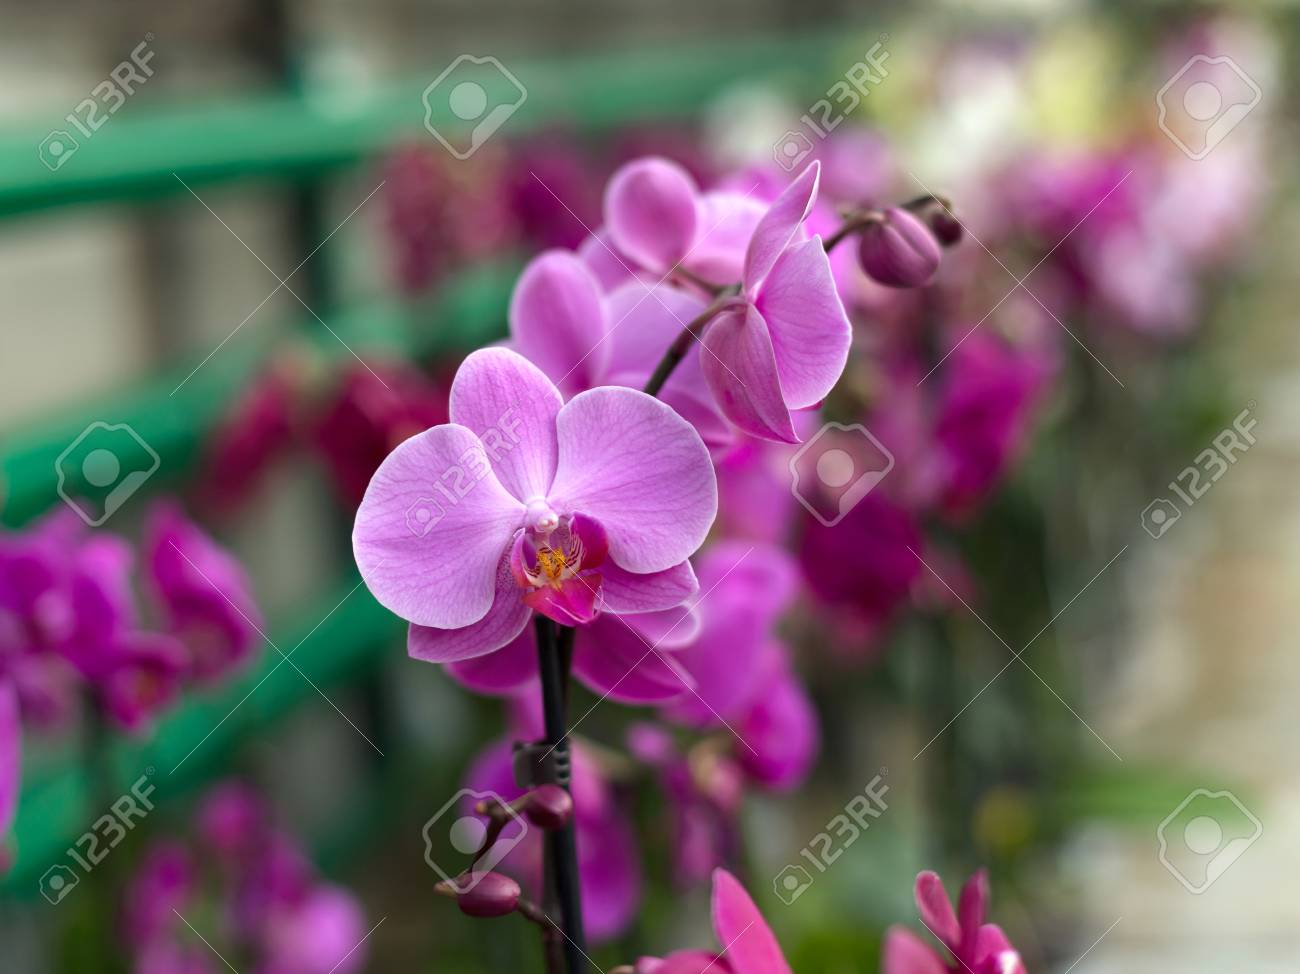 Repeated Orchid Flowers Selective Focus Beautiful Orchids Stock